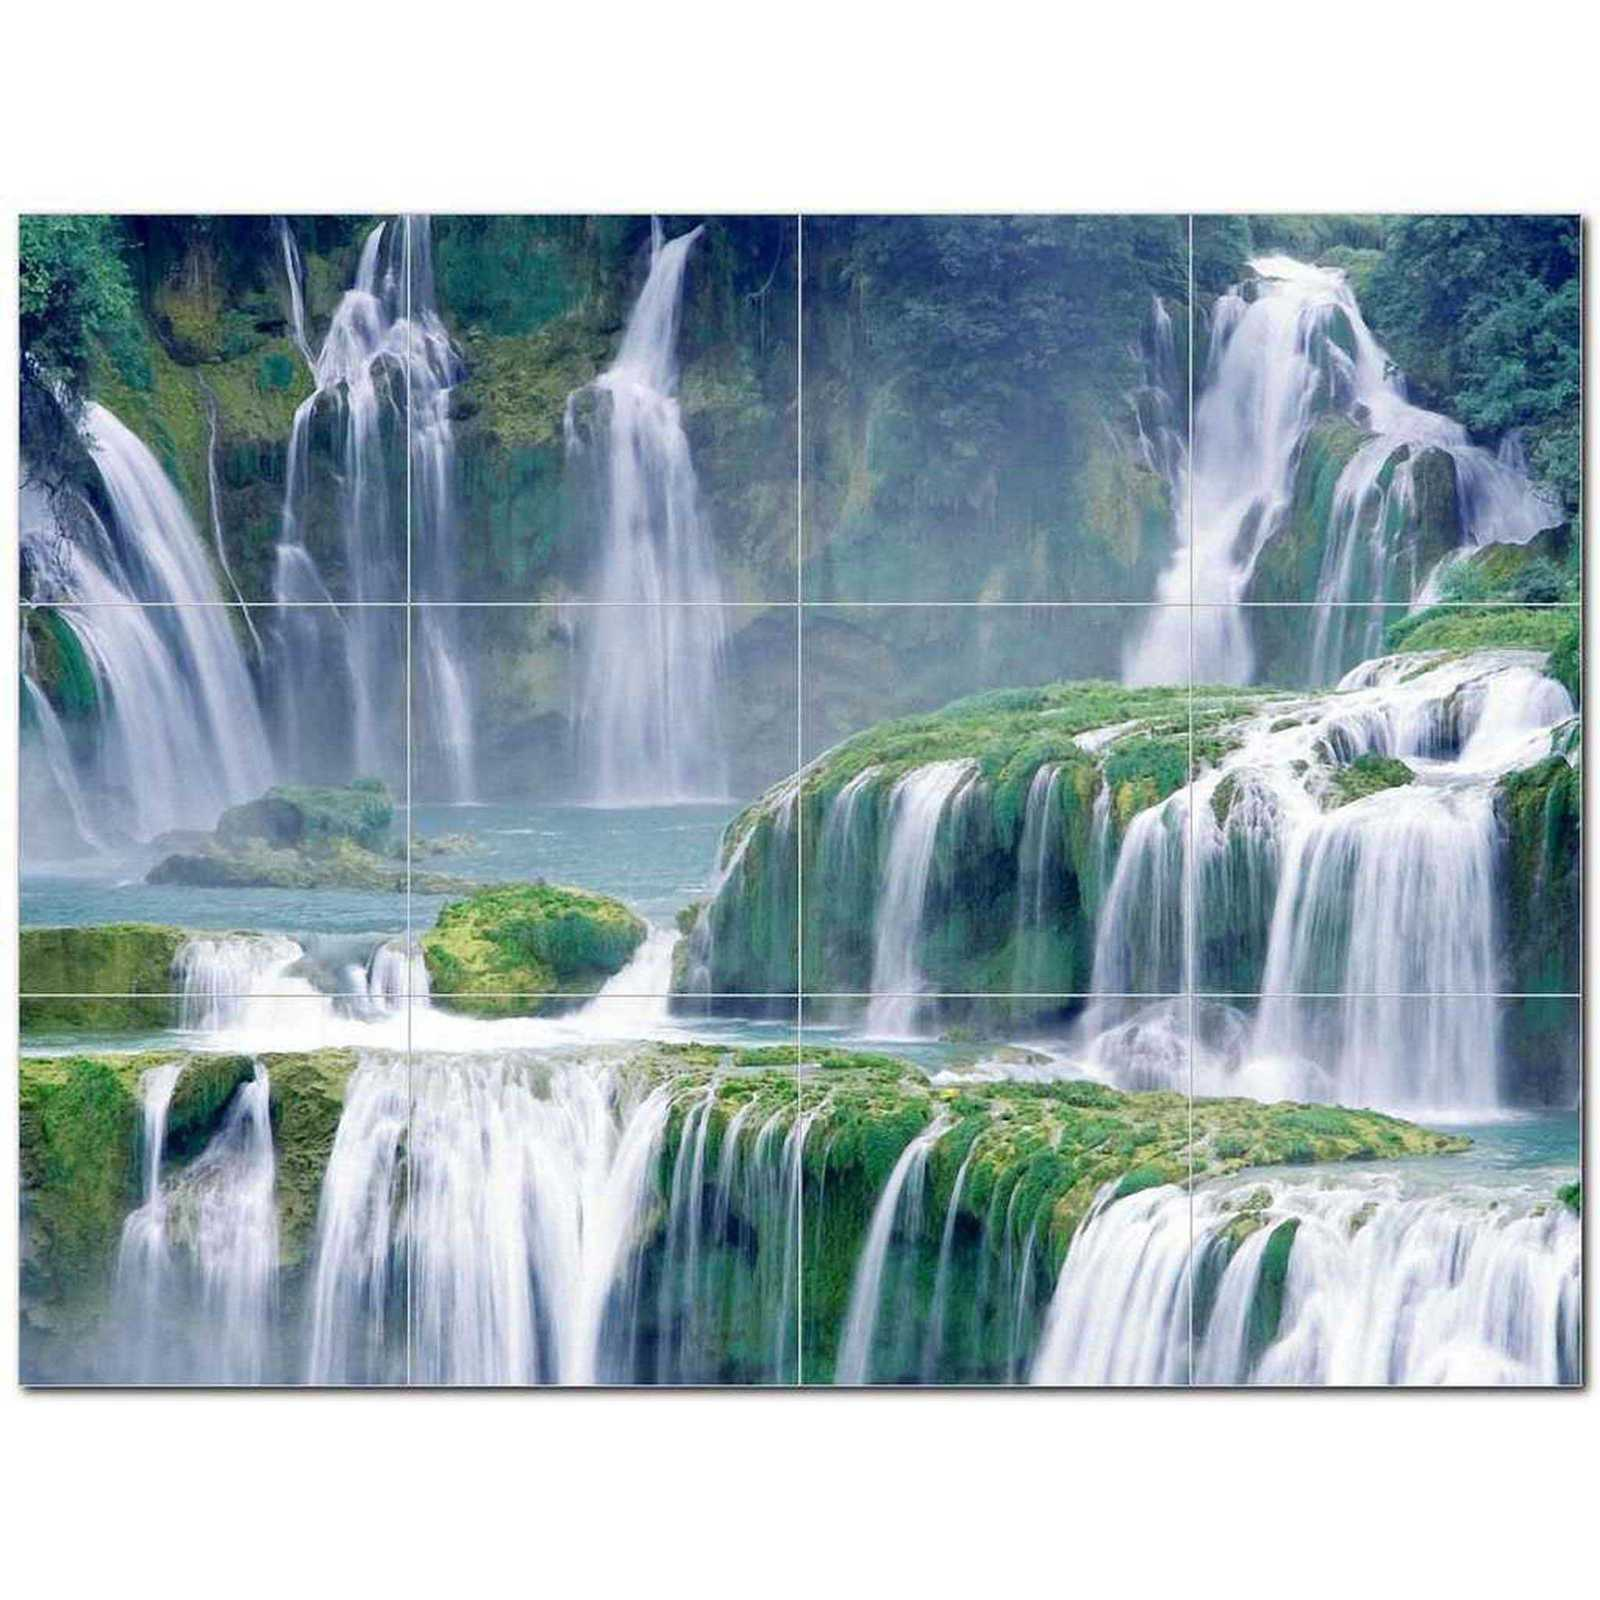 Primary image for Waterfall Photo Ceramic Tile Mural Kitchen Backsplash Bathroom Shower BAZ406091